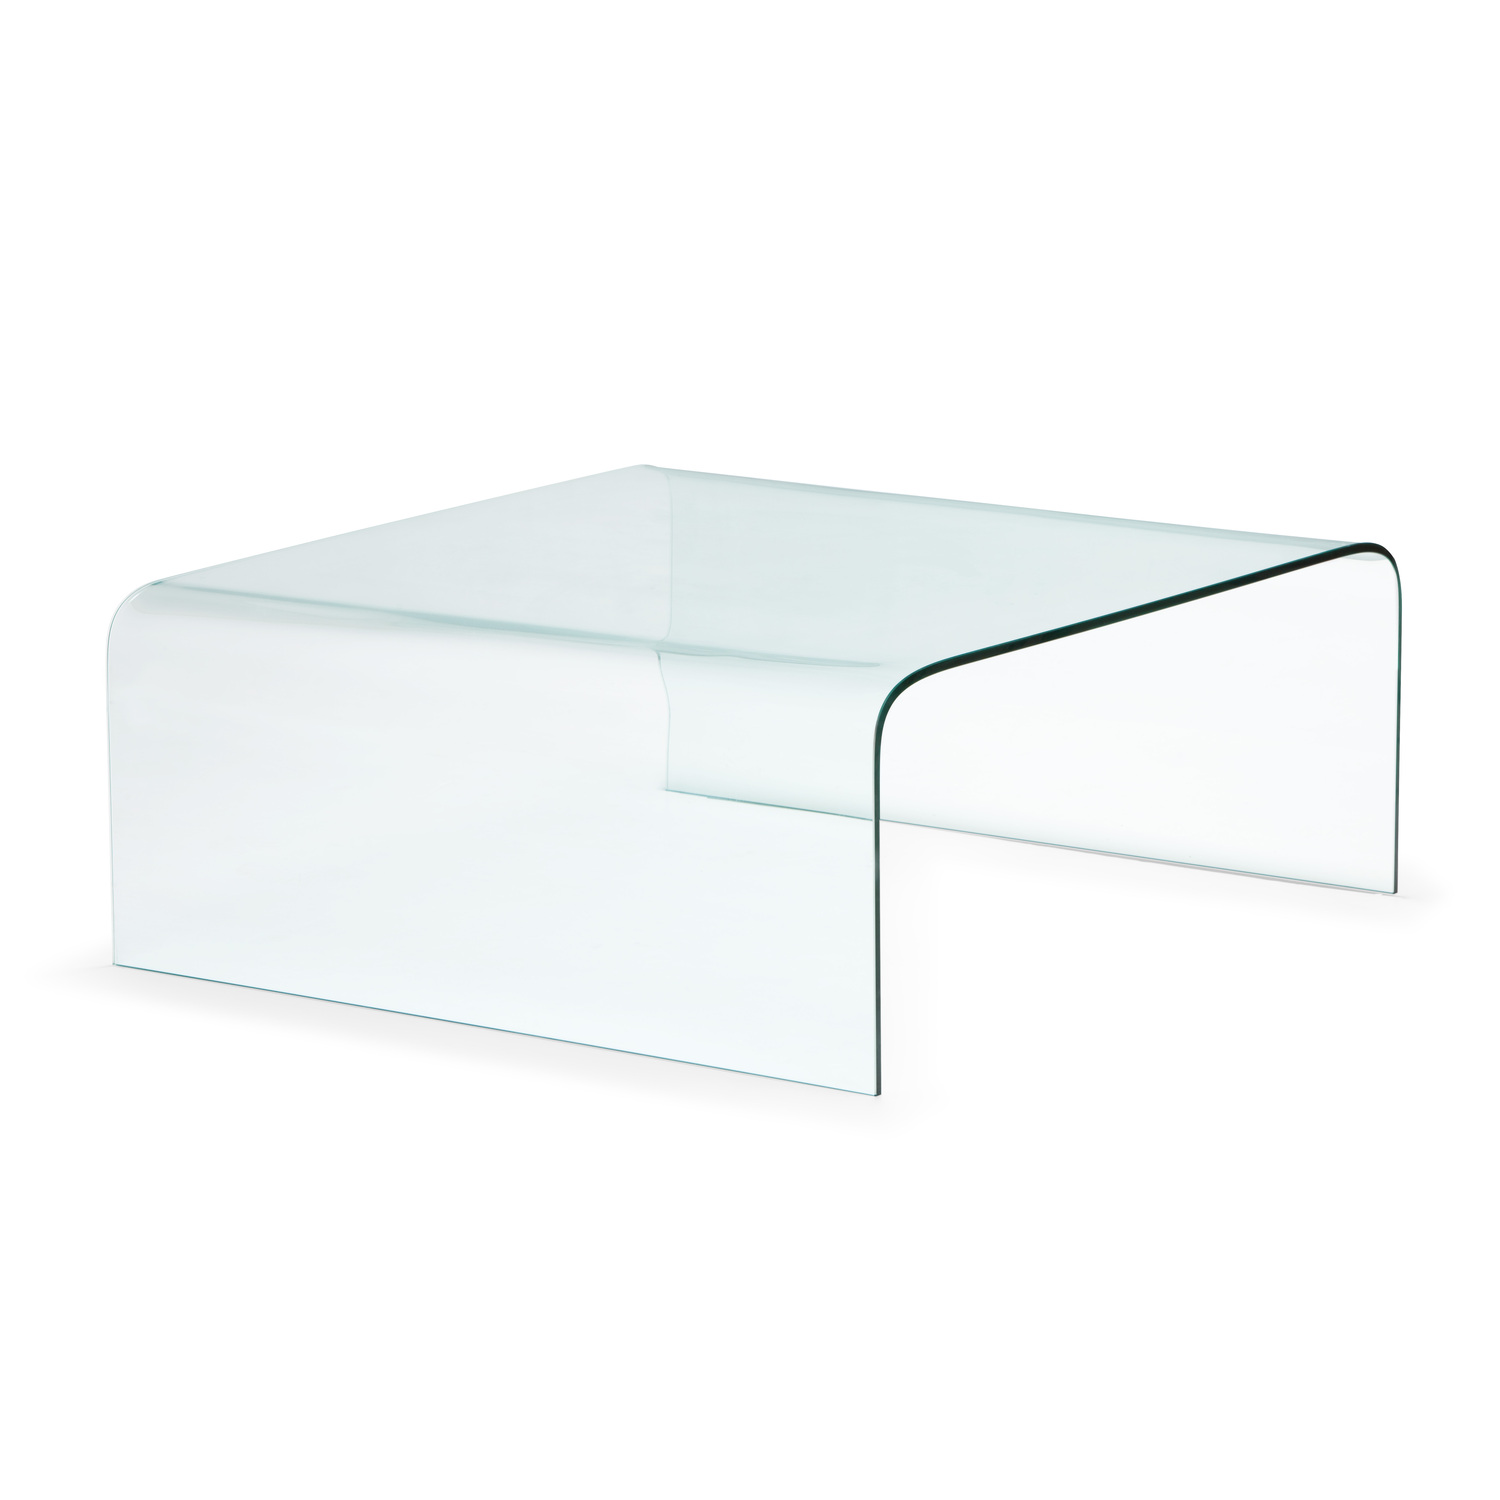 Zuo modern sojourn coffee table tempered glass by oj for Glass furniture